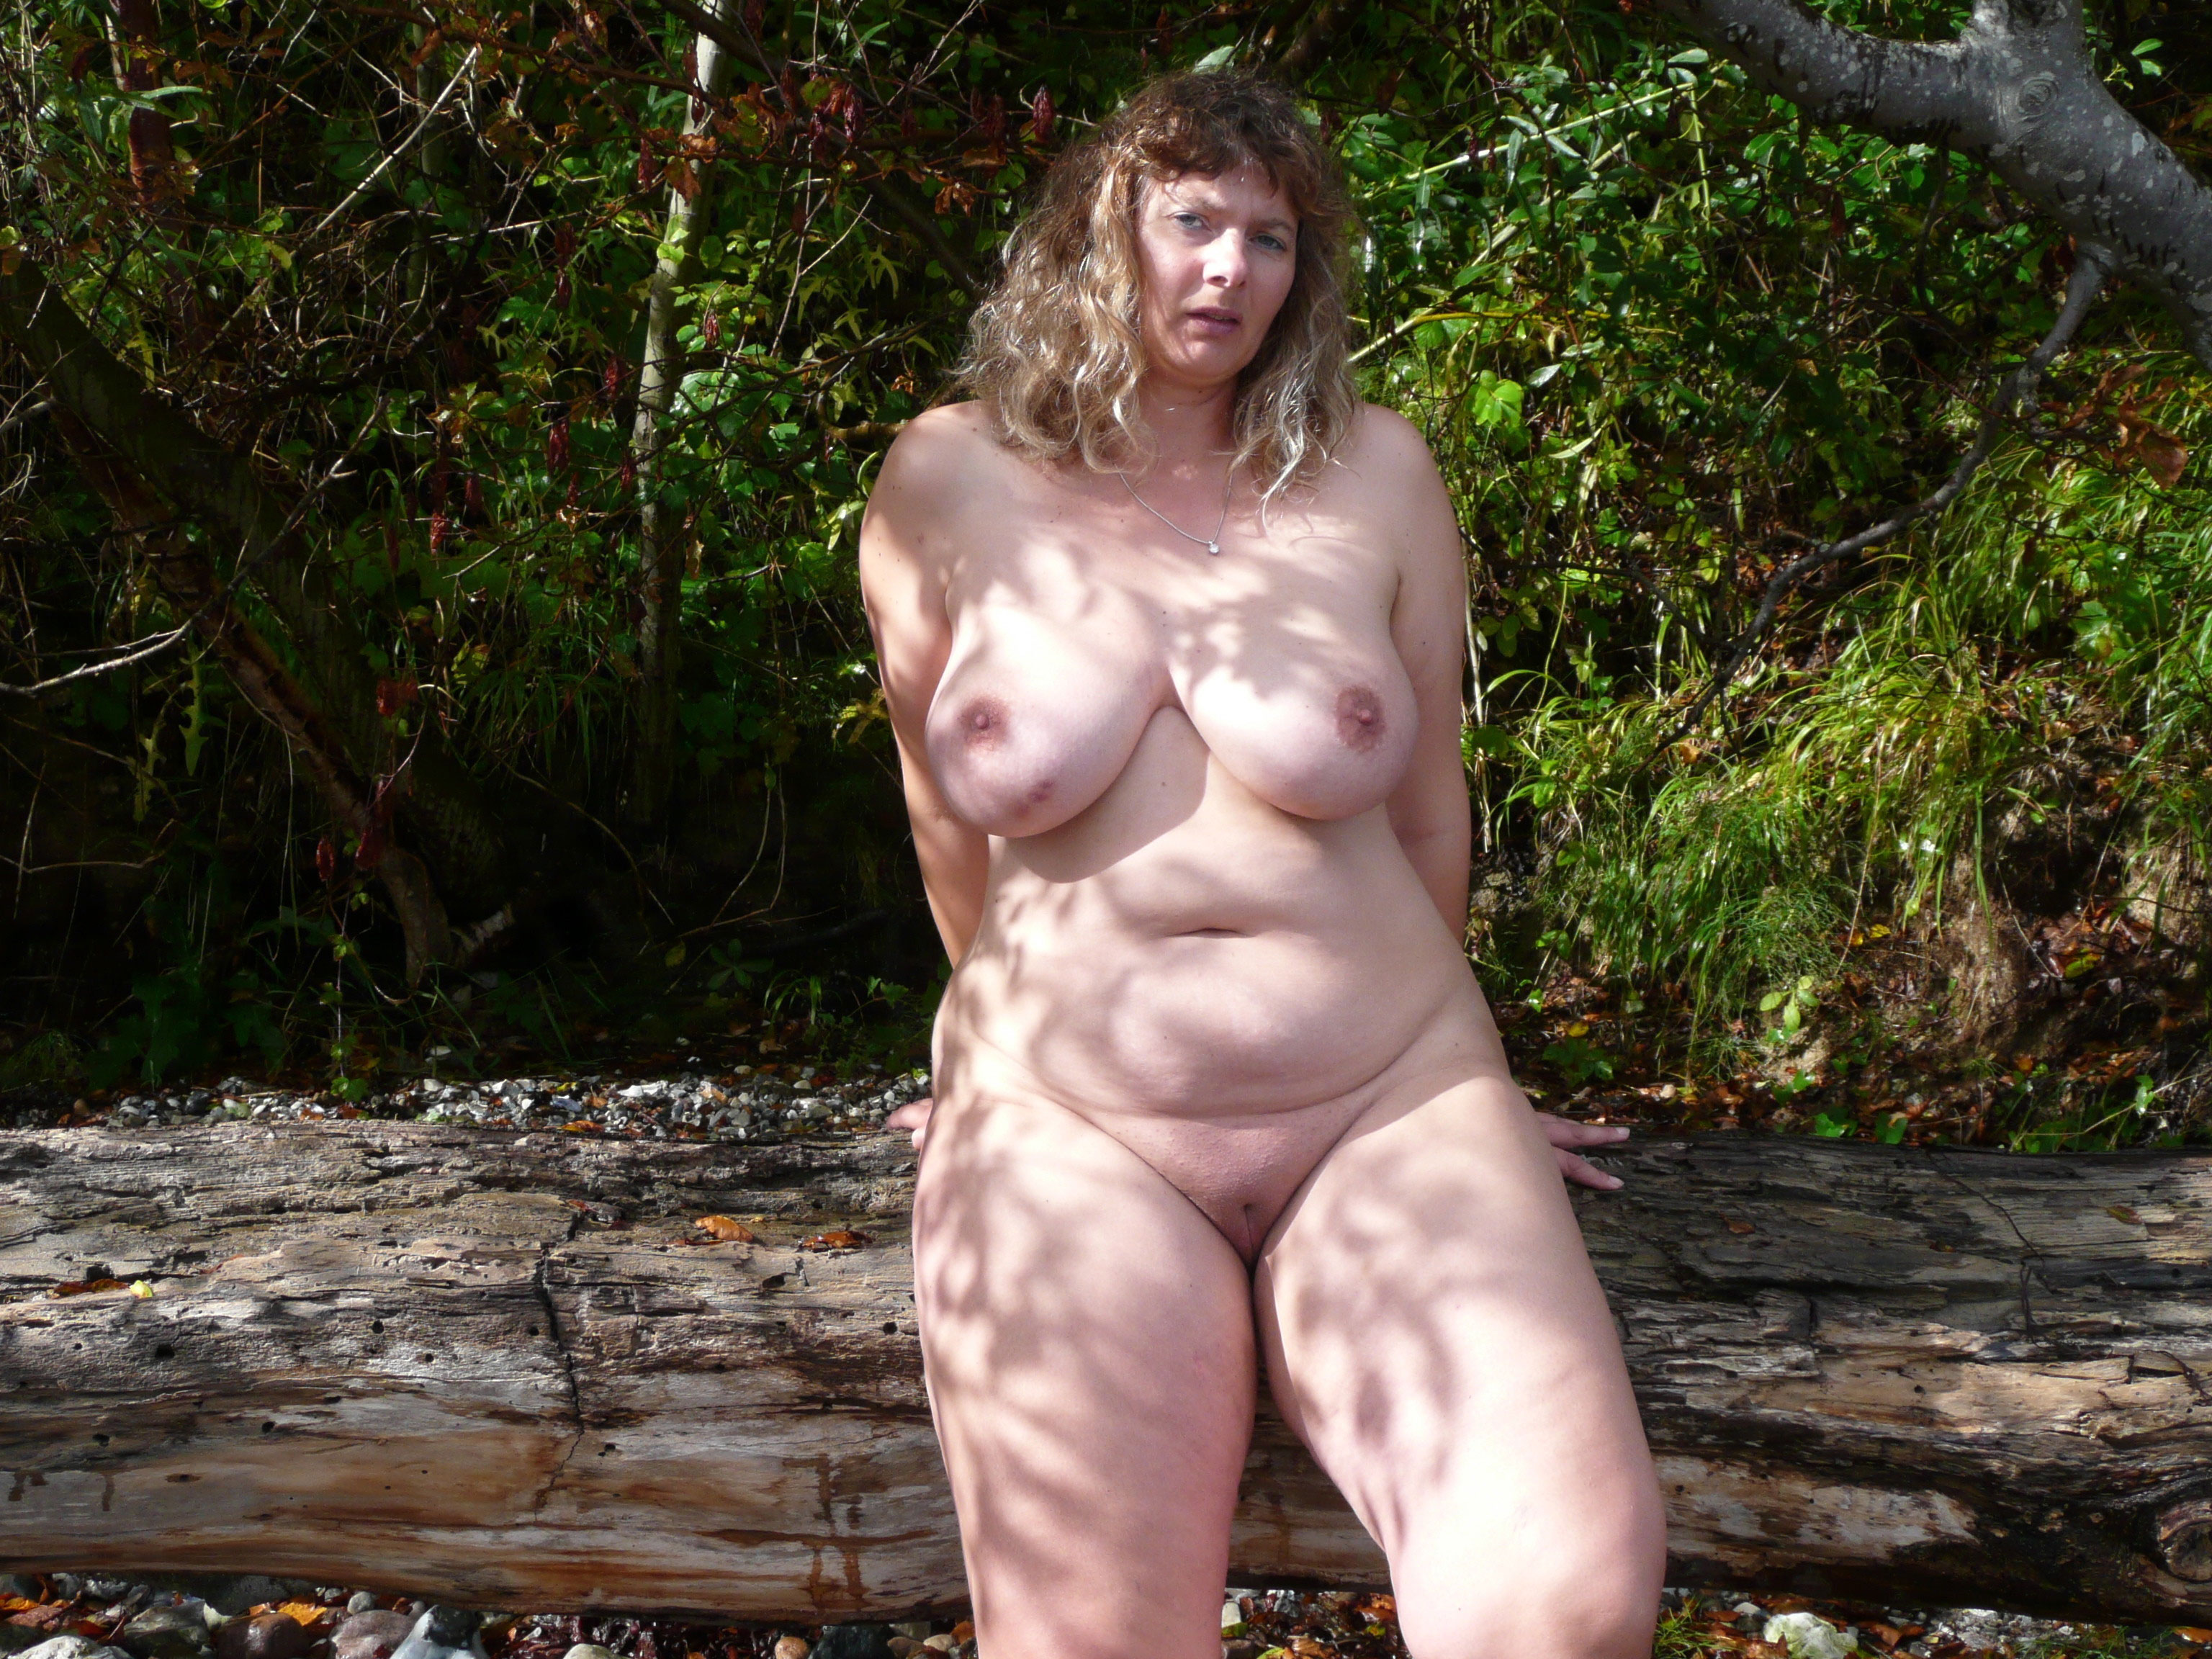 Bbw amateurs posing nude outdoors